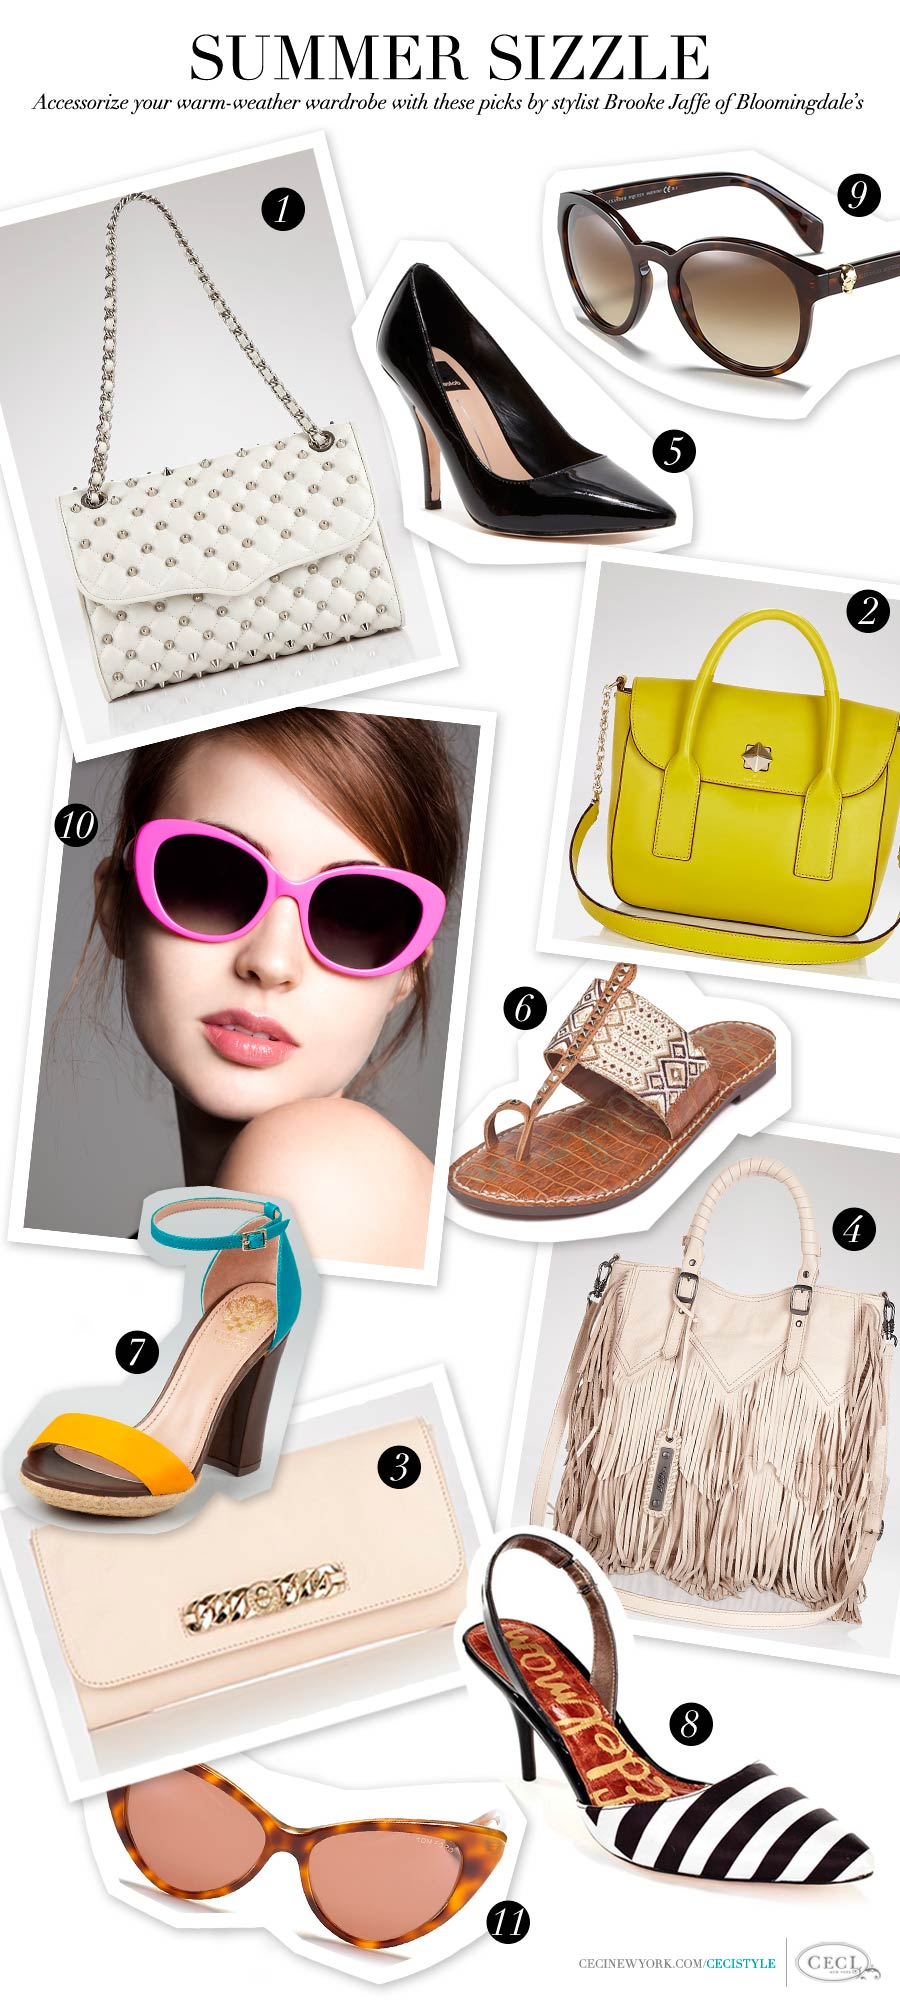 Summer Sizzle - Accessorize your warm-weather wardrobe with these picks by stylist Brooke Jaffe, Bloomingdale's